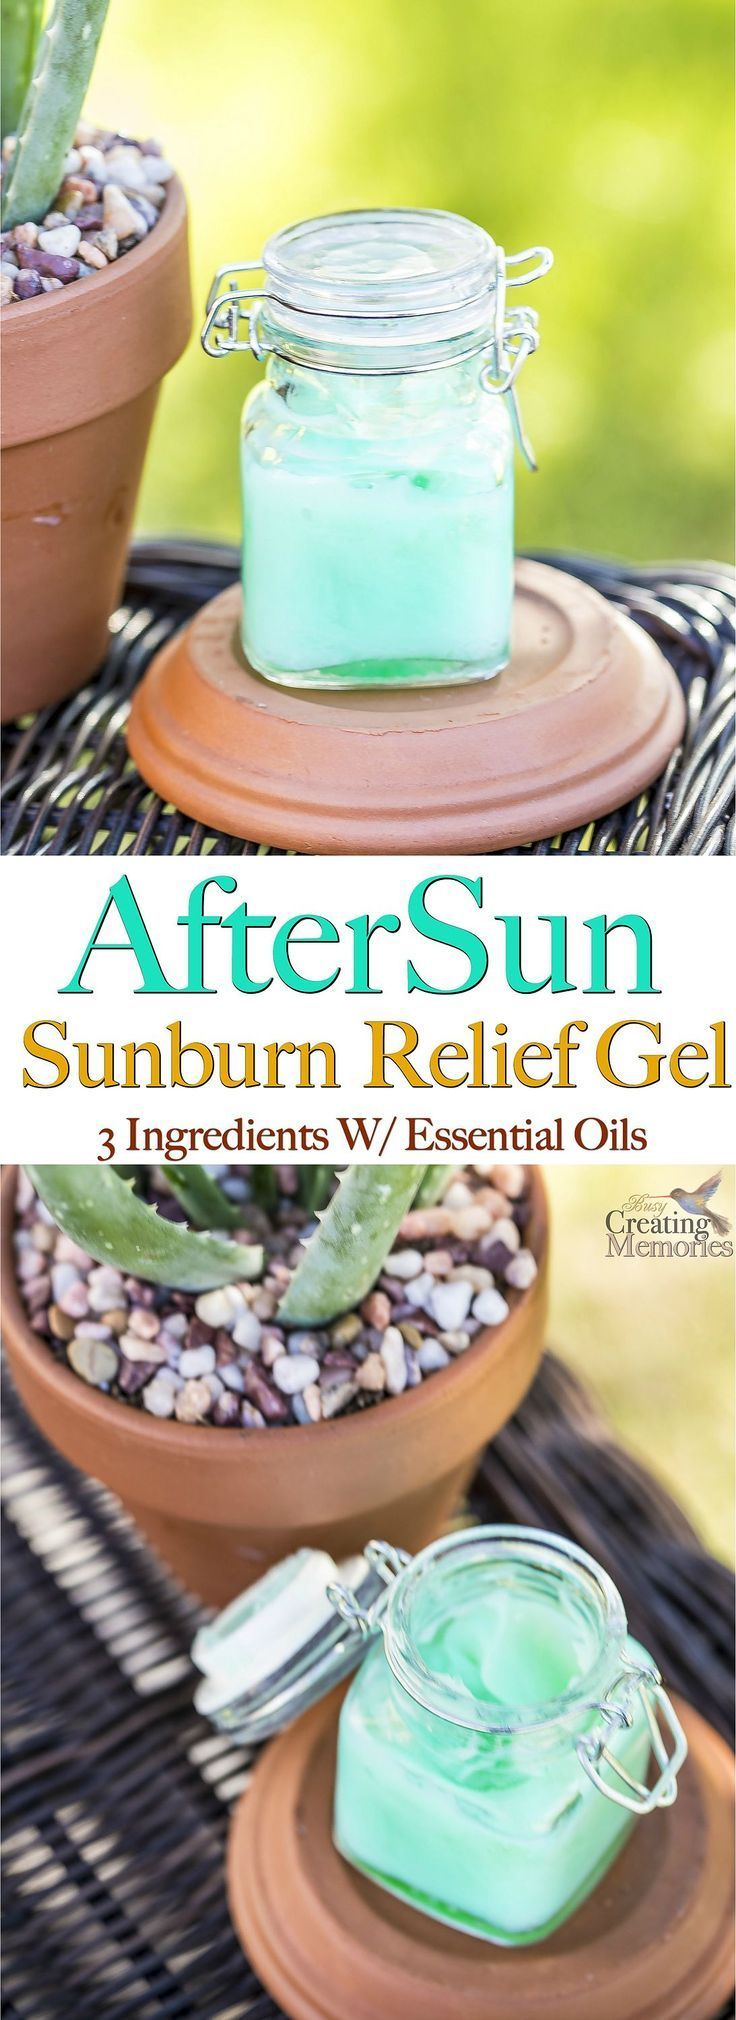 Say Goodbye to Painful, Itchy, Peeling sunburns and hello to fabulous summer skin care after the sun! This DIY AfterSun Sunburn relief Gel is the BEST as it instantly Soothes, Cools, heals and moisturizes your skin for quick healing. It is homemade with 3 natural ingredients such as Aloe Vera and essential Oils. Plus it makes great gifts!